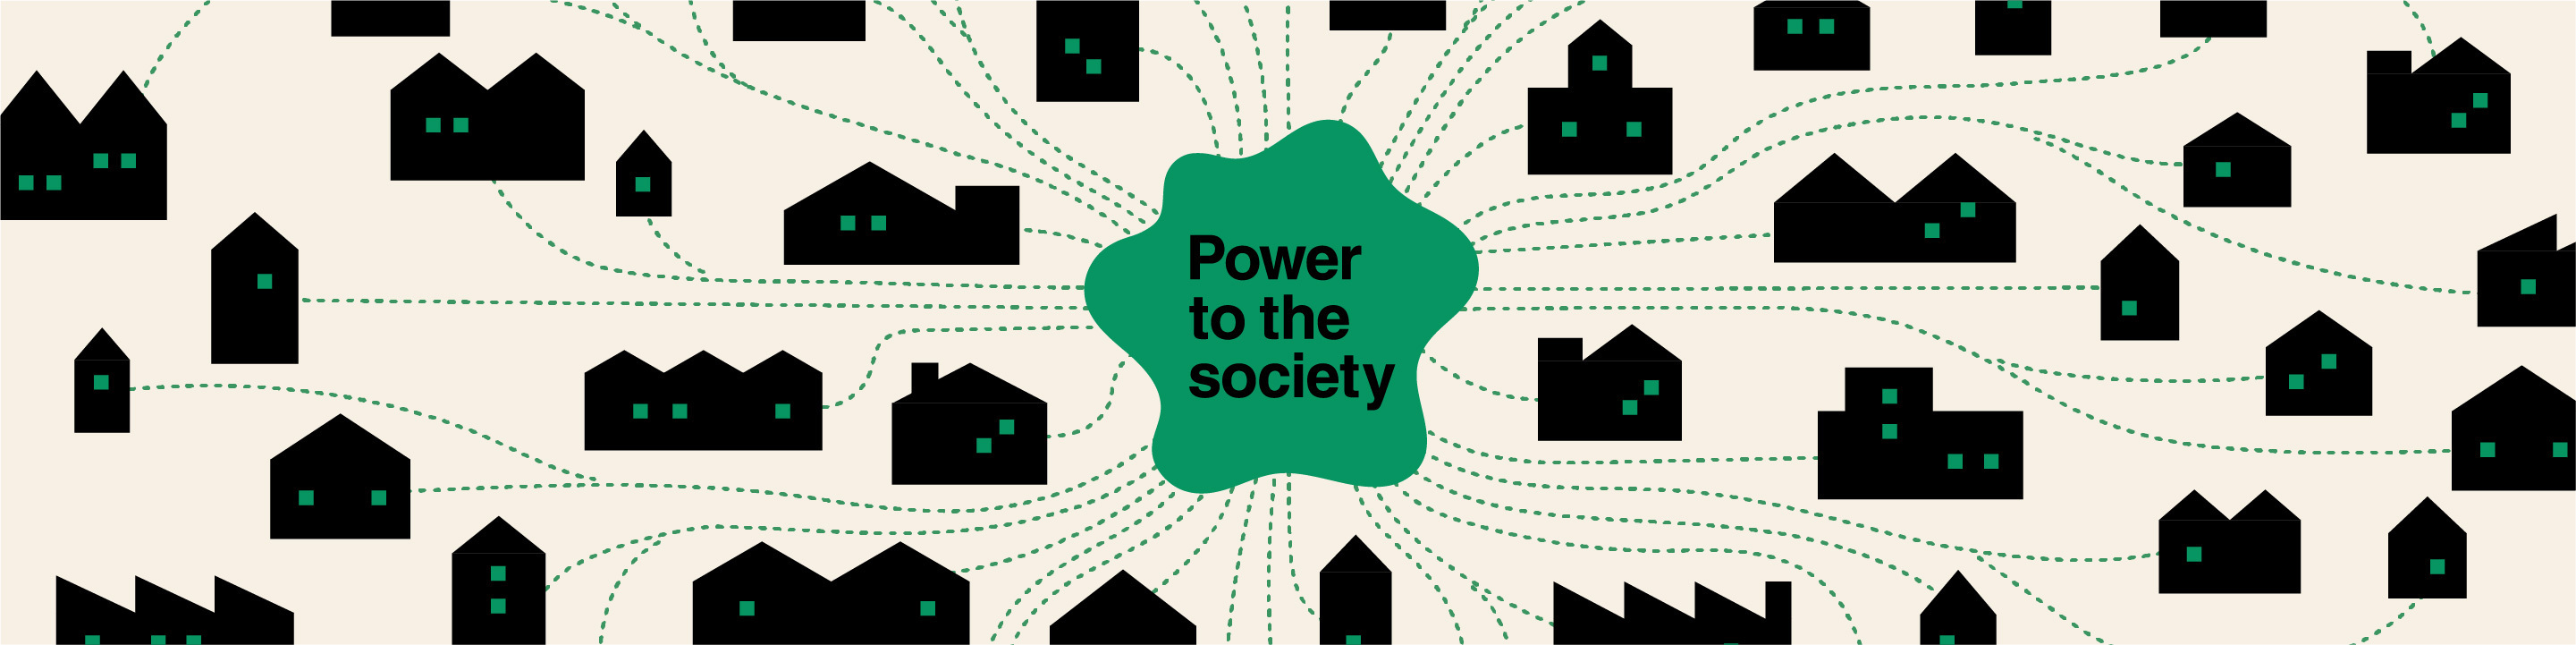 Power to the society